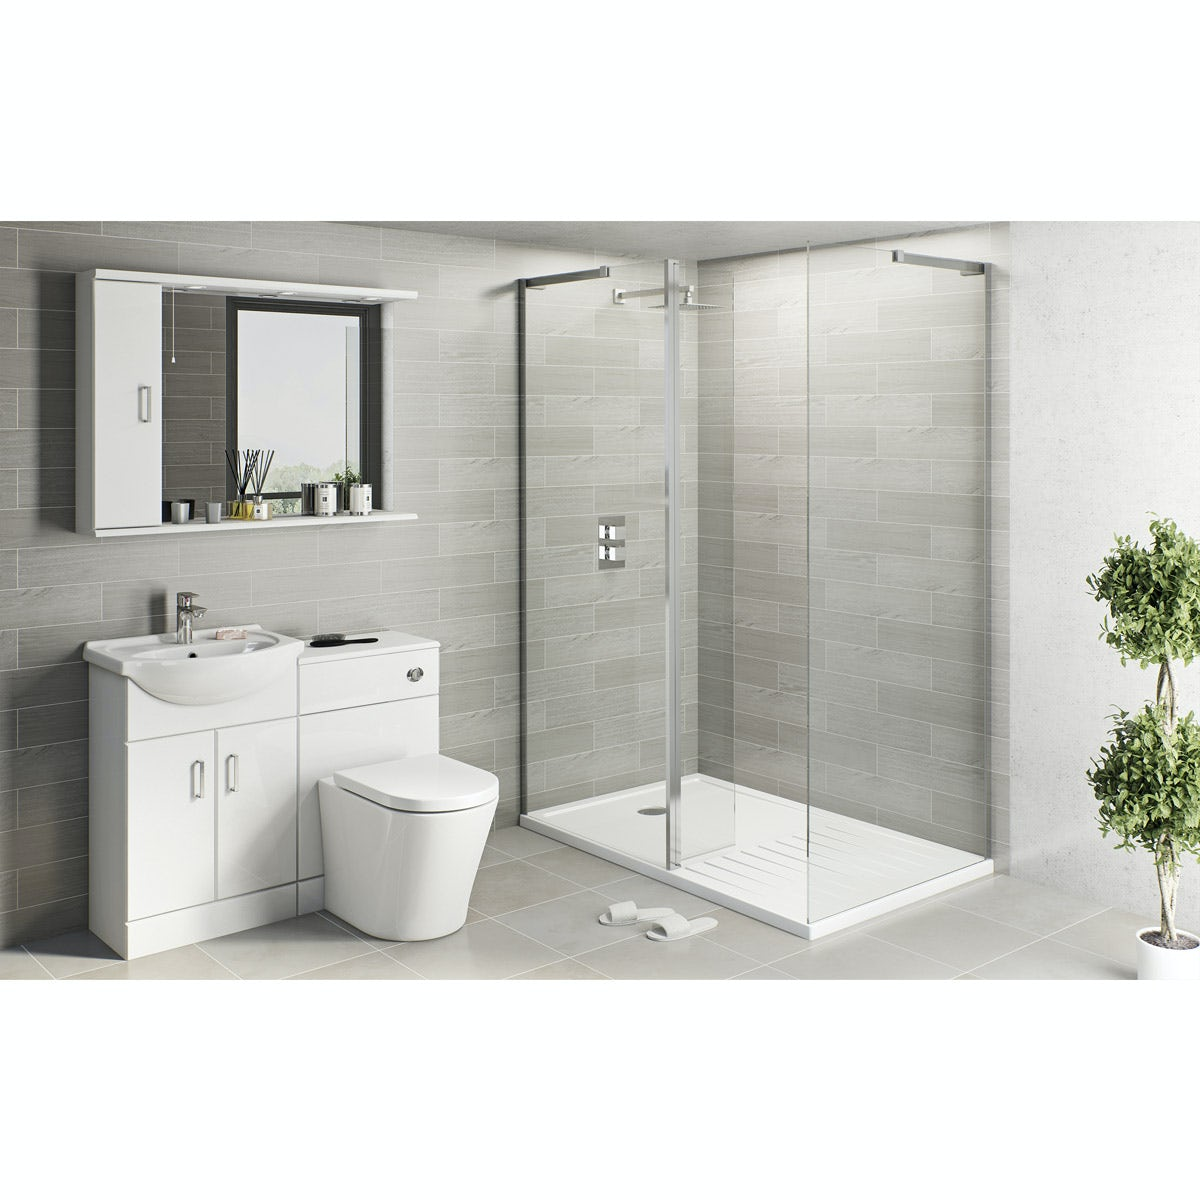 Orchard Eden White Ensuite Suite With 8mm Frameless Walk In Shower Enclosure And Tray